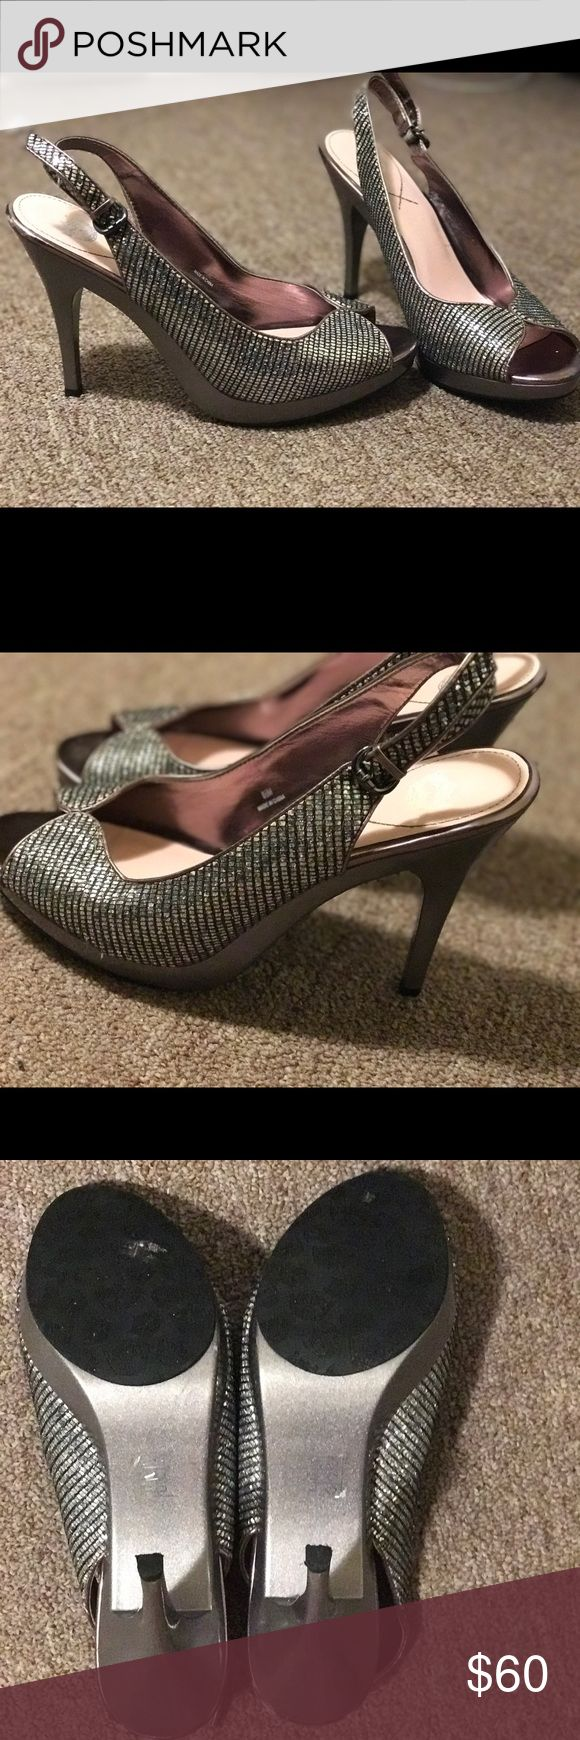 Silver rhinestone heels Elegant shimmery heels that glimmer in the light. These are size 8.5 Shoes Heels